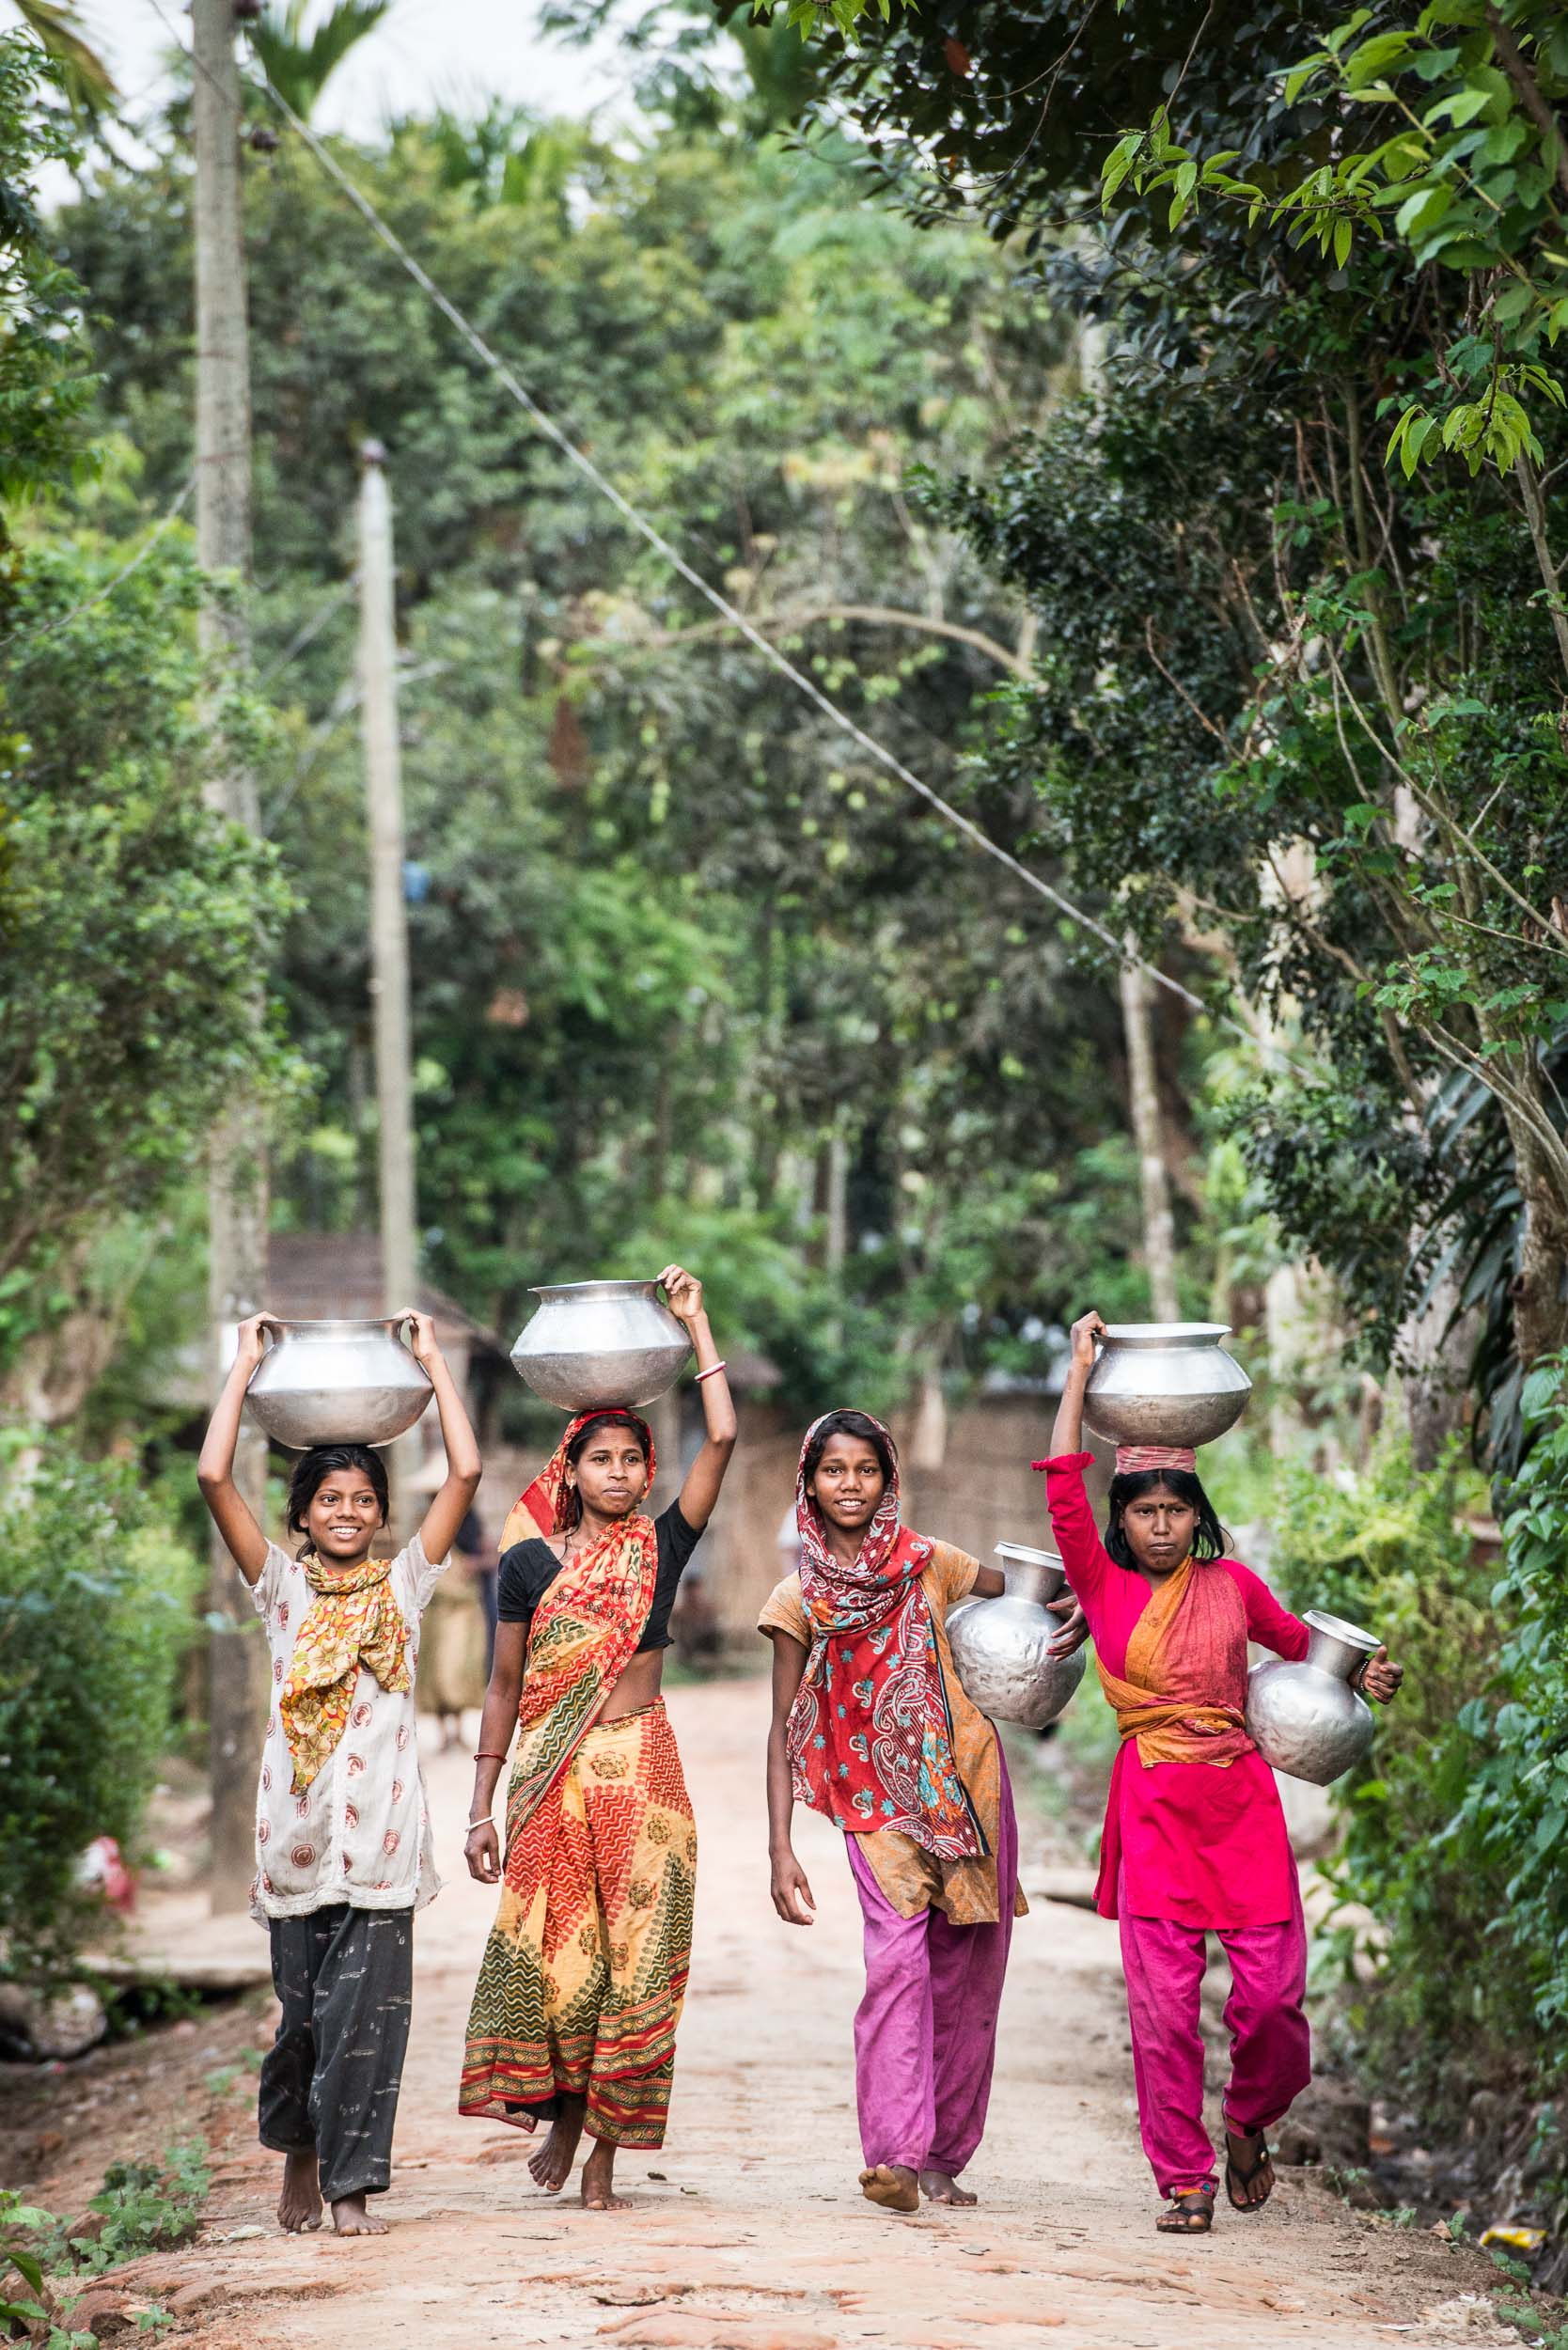 Bangladesh women with pots - Travel - Photo credit Nicola Bailey.jpg